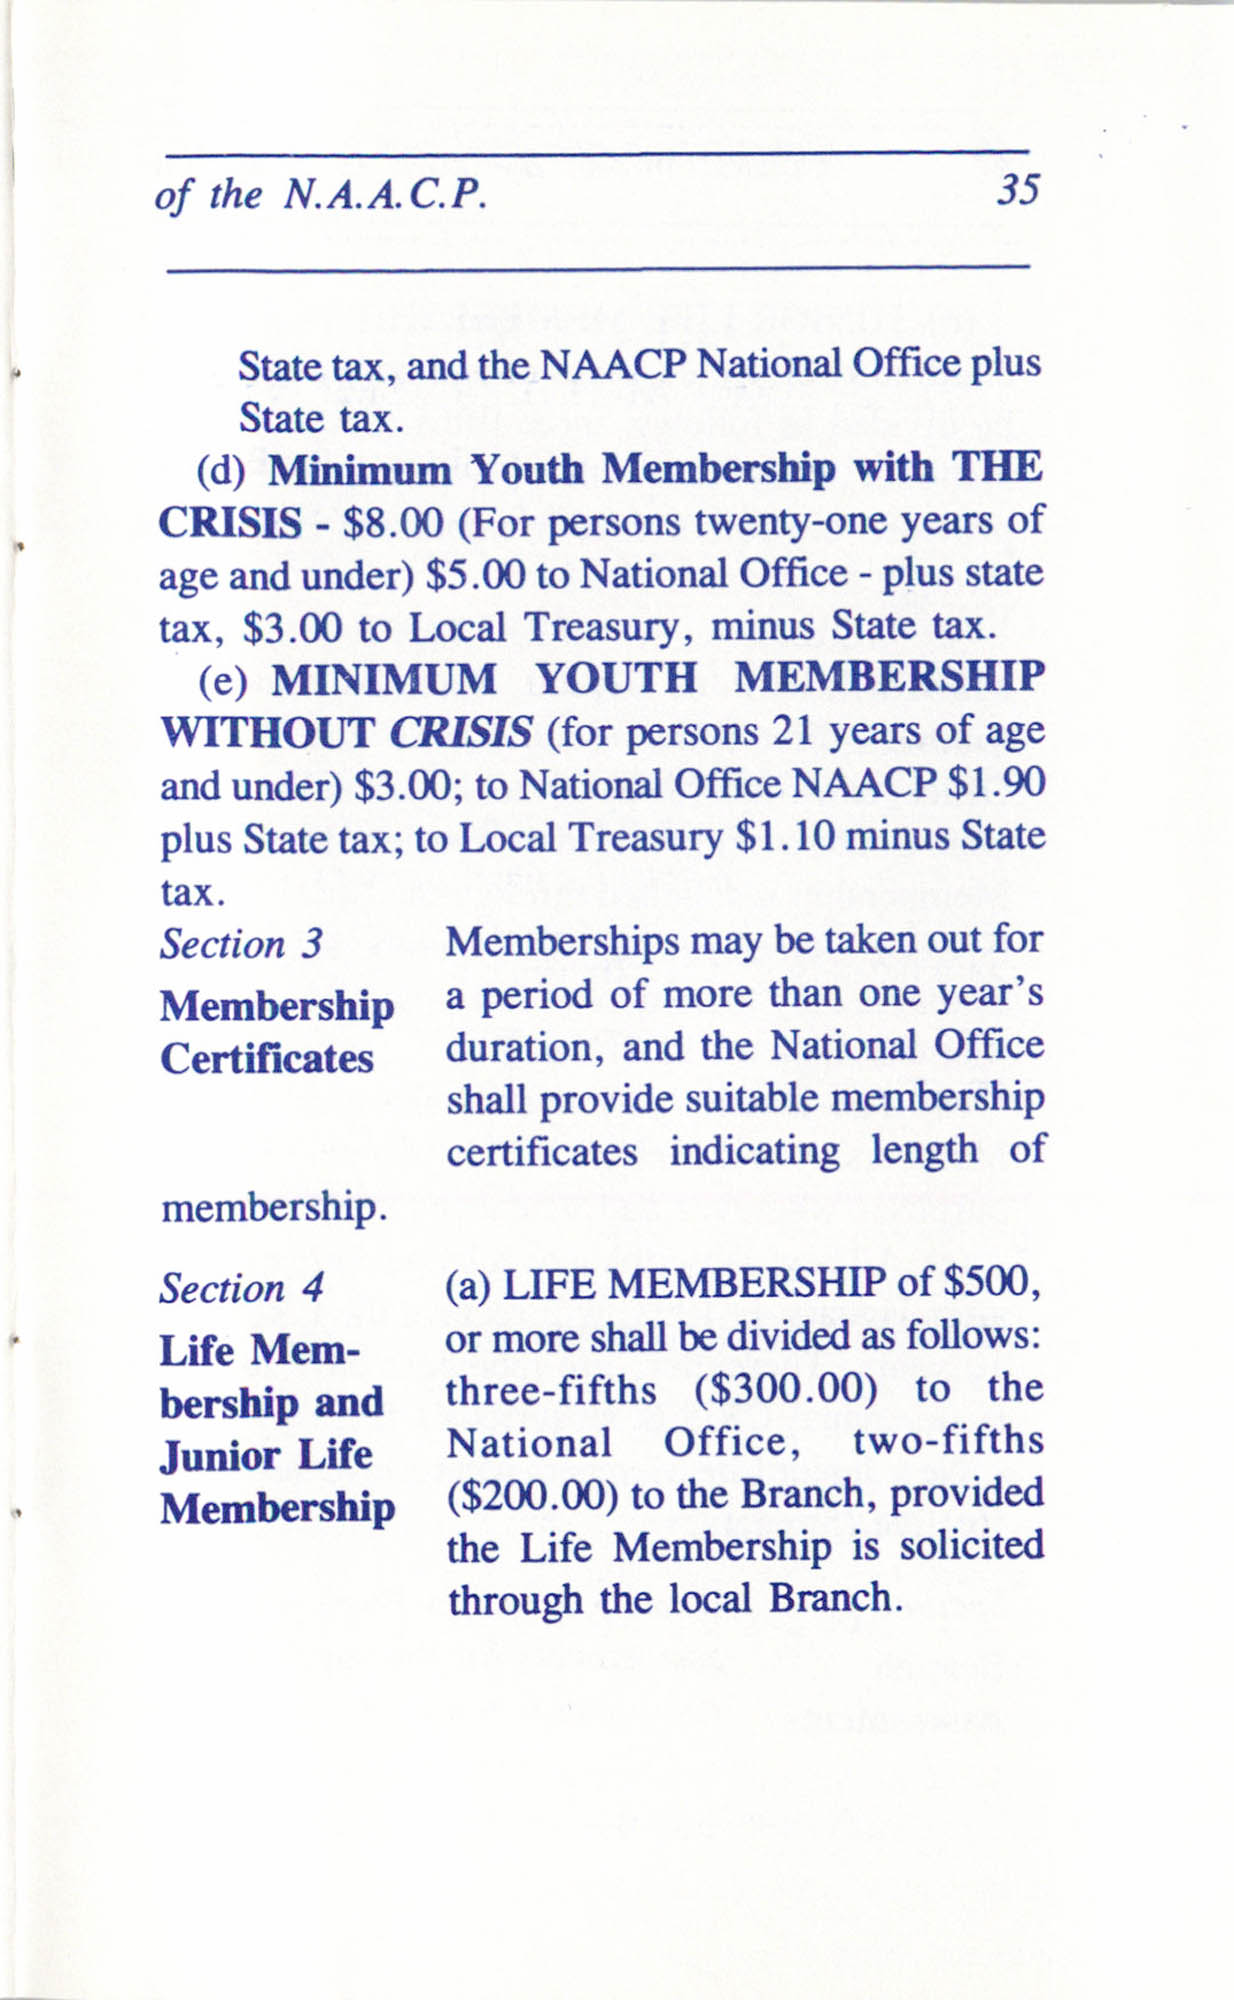 Constitution and By-Laws for Branches of the NAACP, June 1993, Page 35